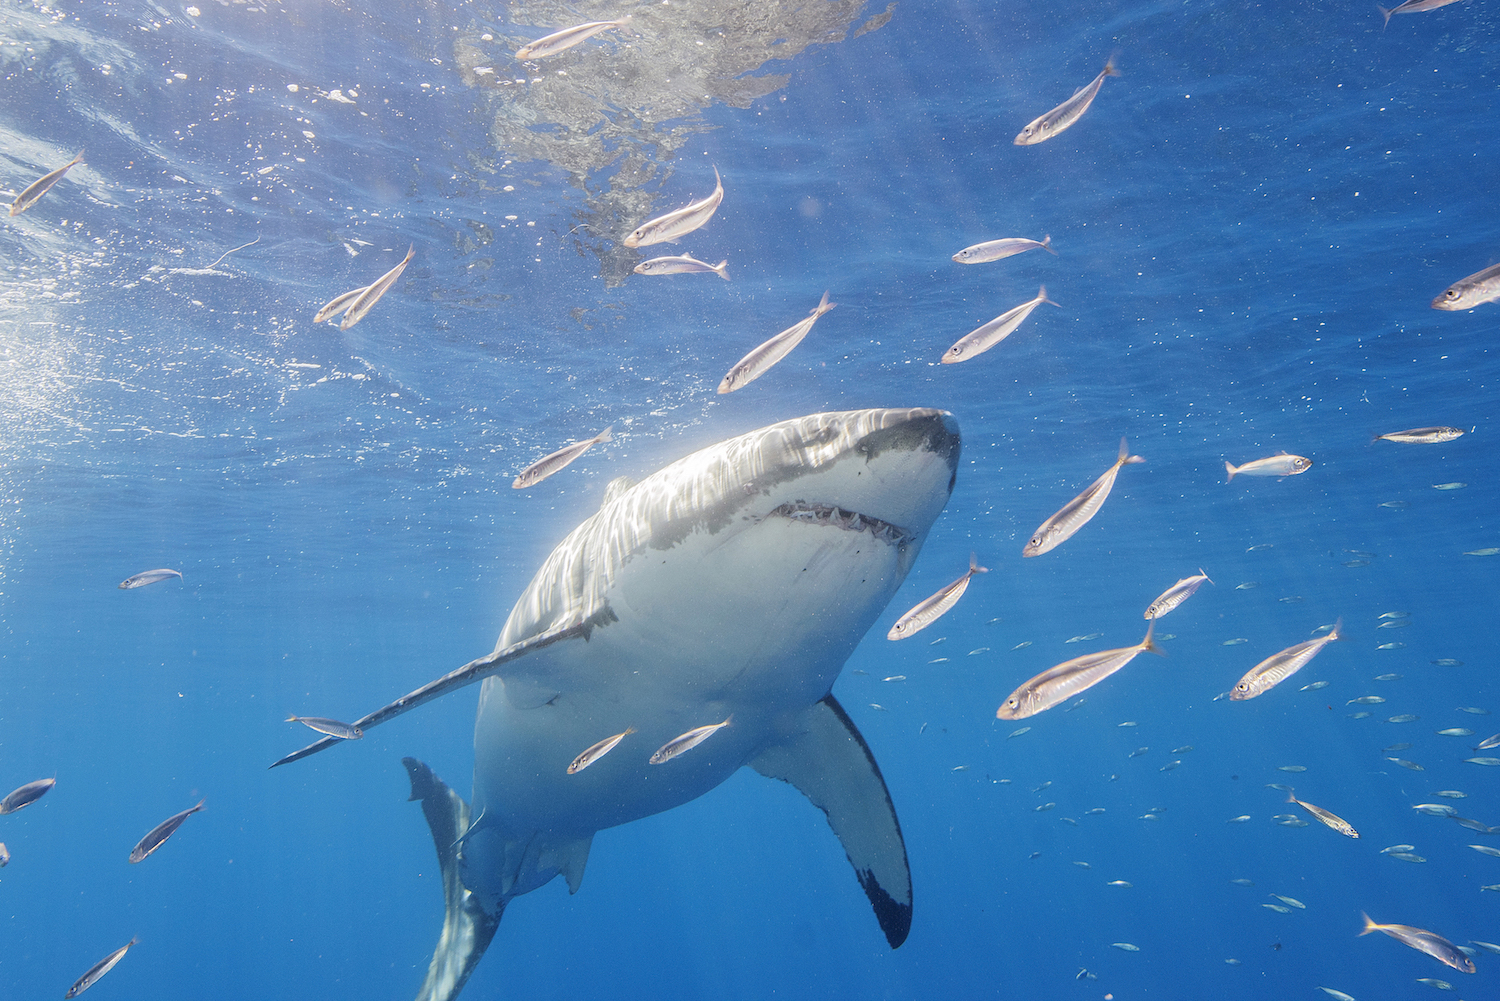 Underwater Robots Used To Search for Great White Sharks